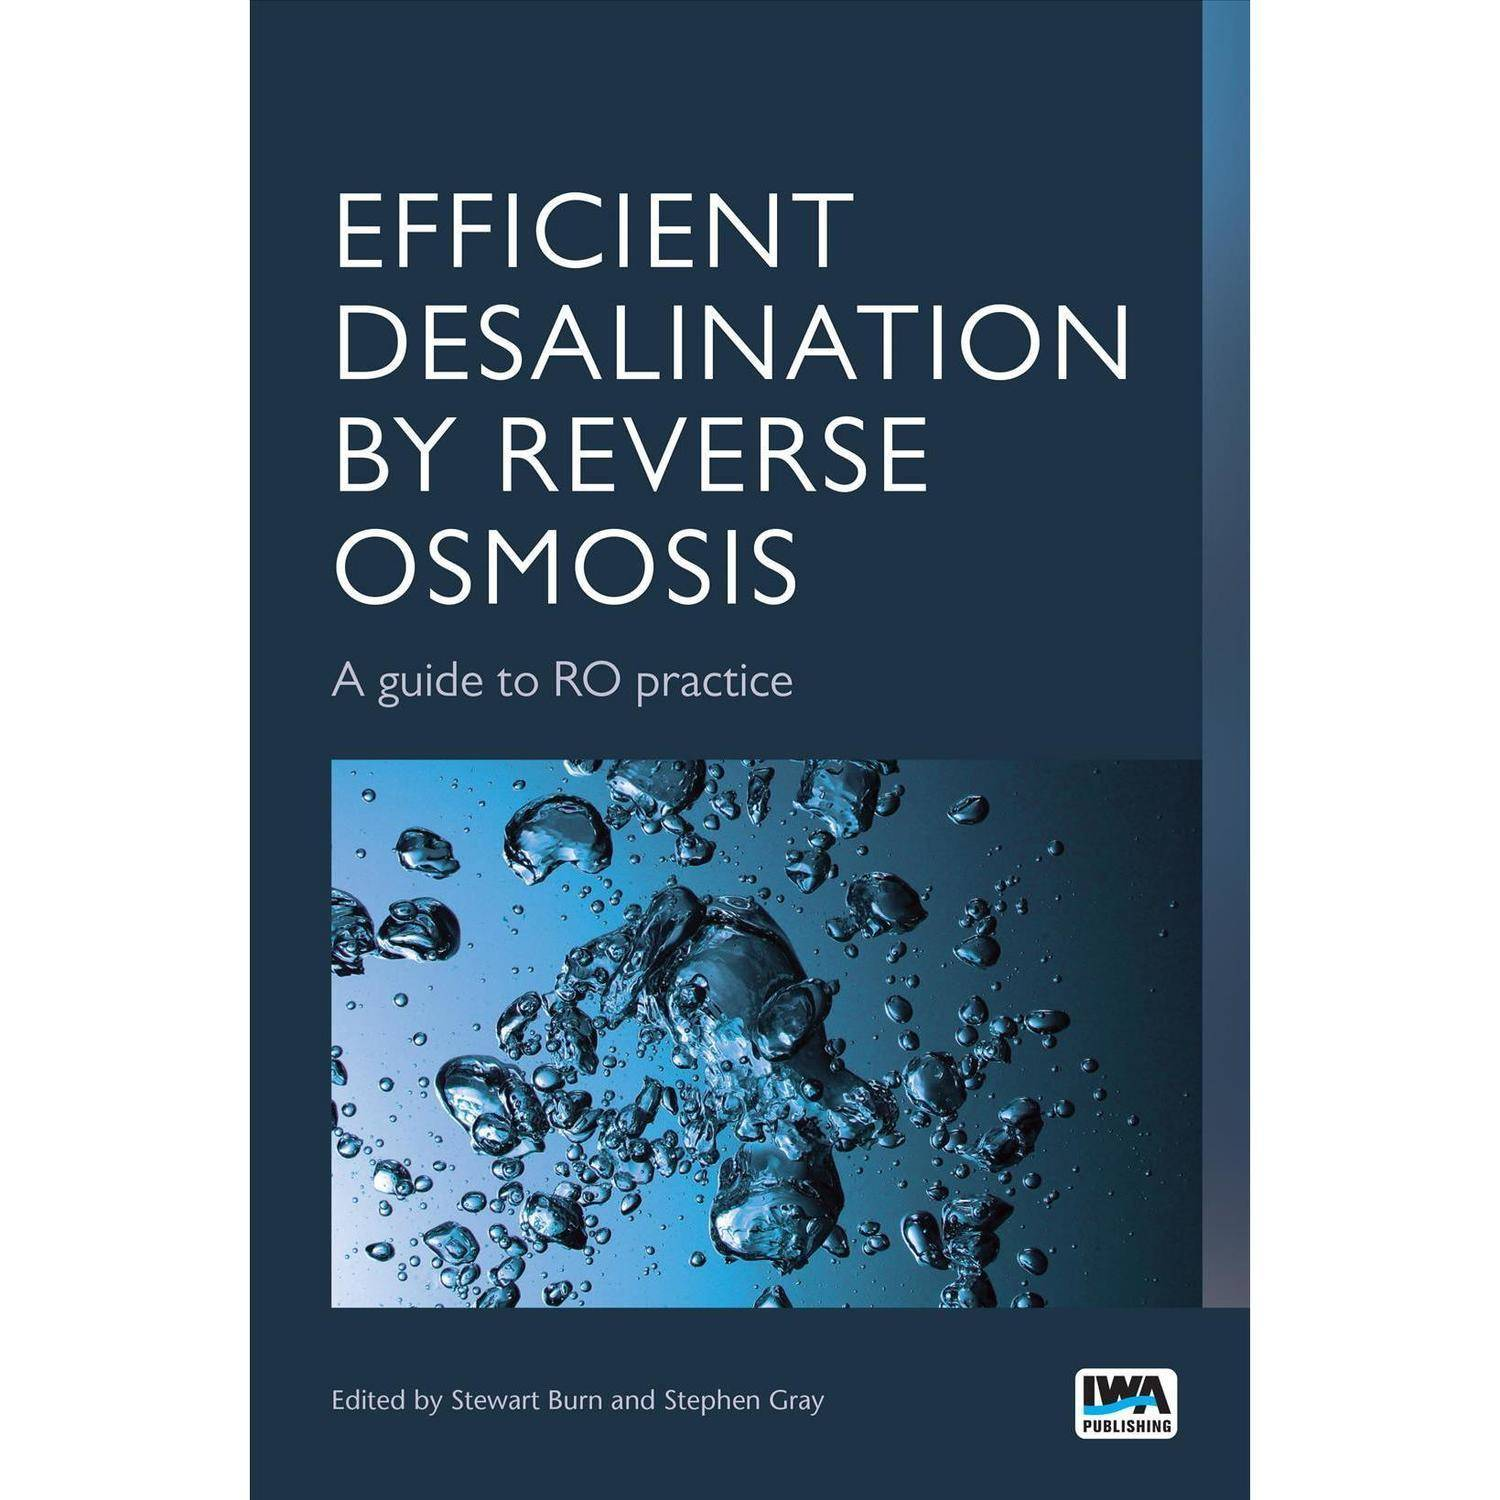 Efficient Desalination by Reverse Osmosis: A Guide To RO Practice by